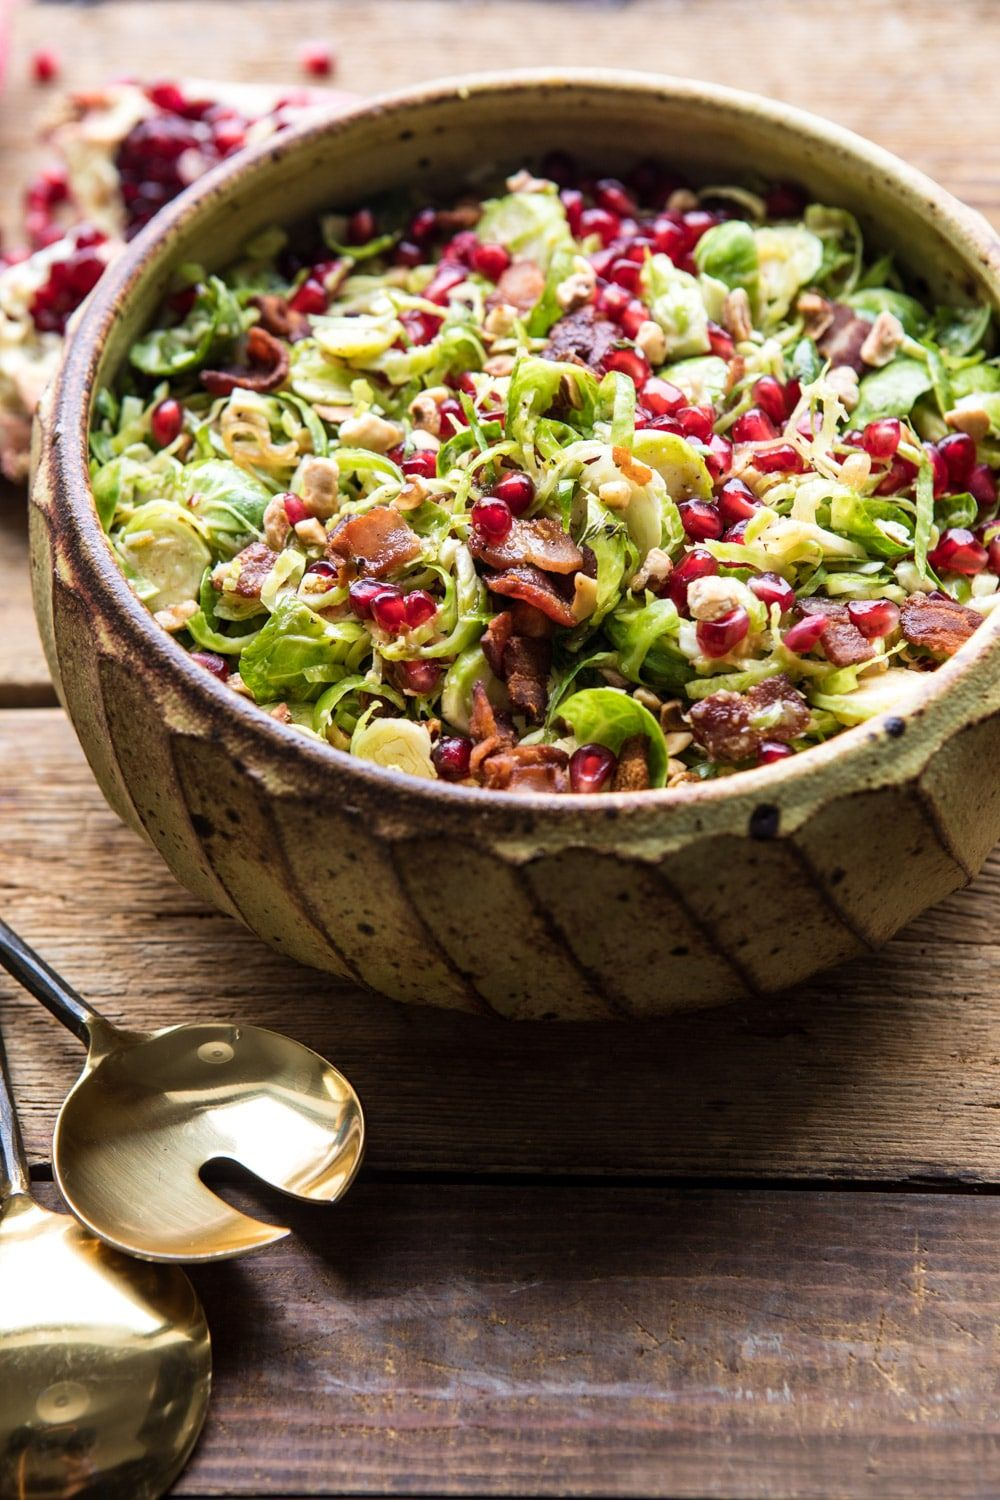 Shredded Brussels Sprout Bacon Salad with Warm Cider Vinaigrette